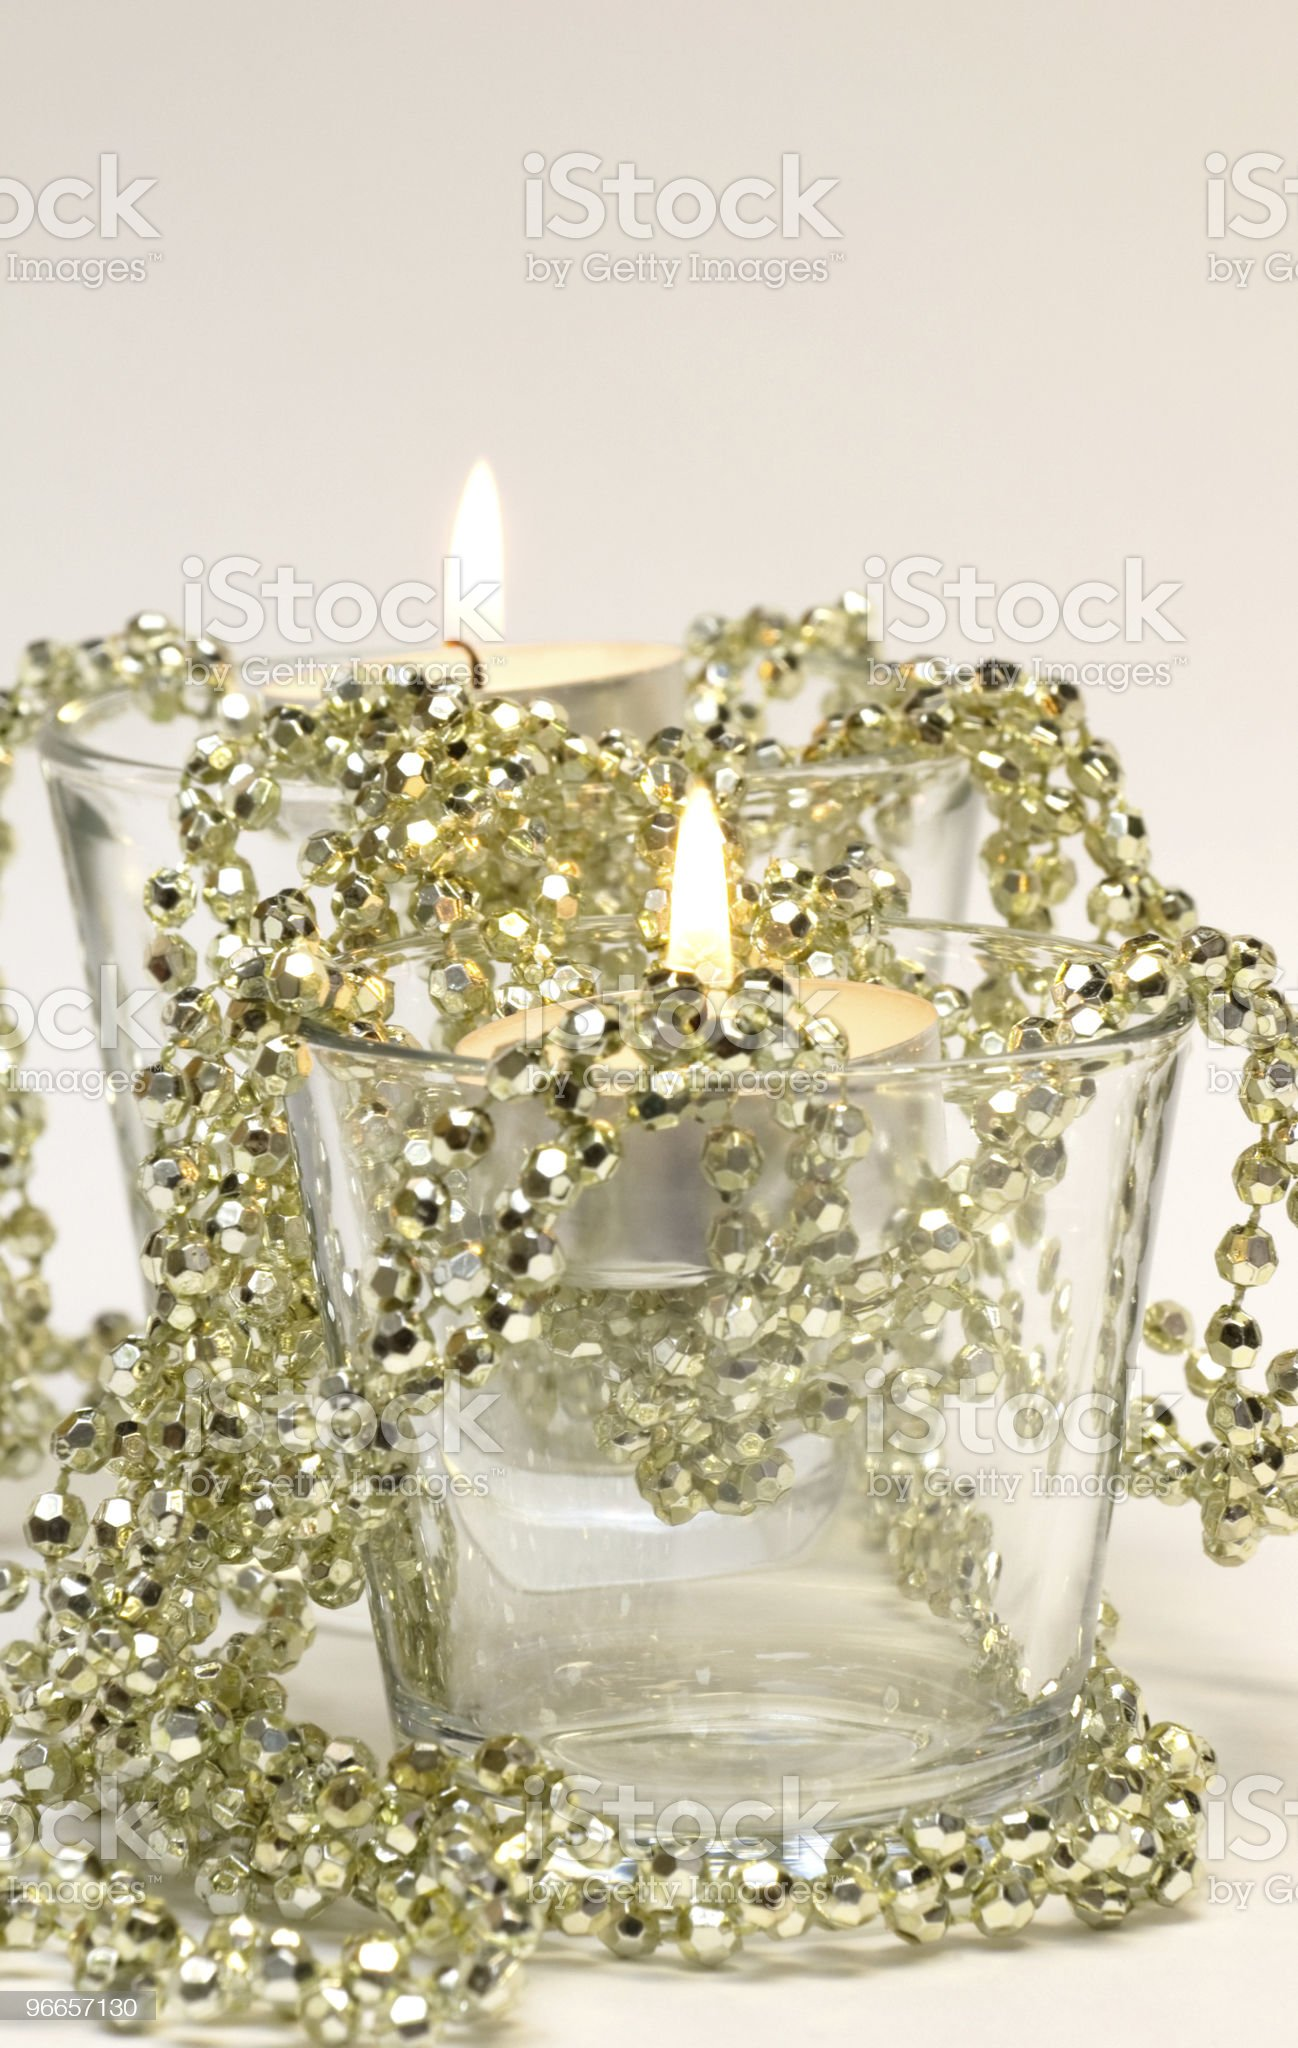 Two Candles in Glass royalty-free stock photo